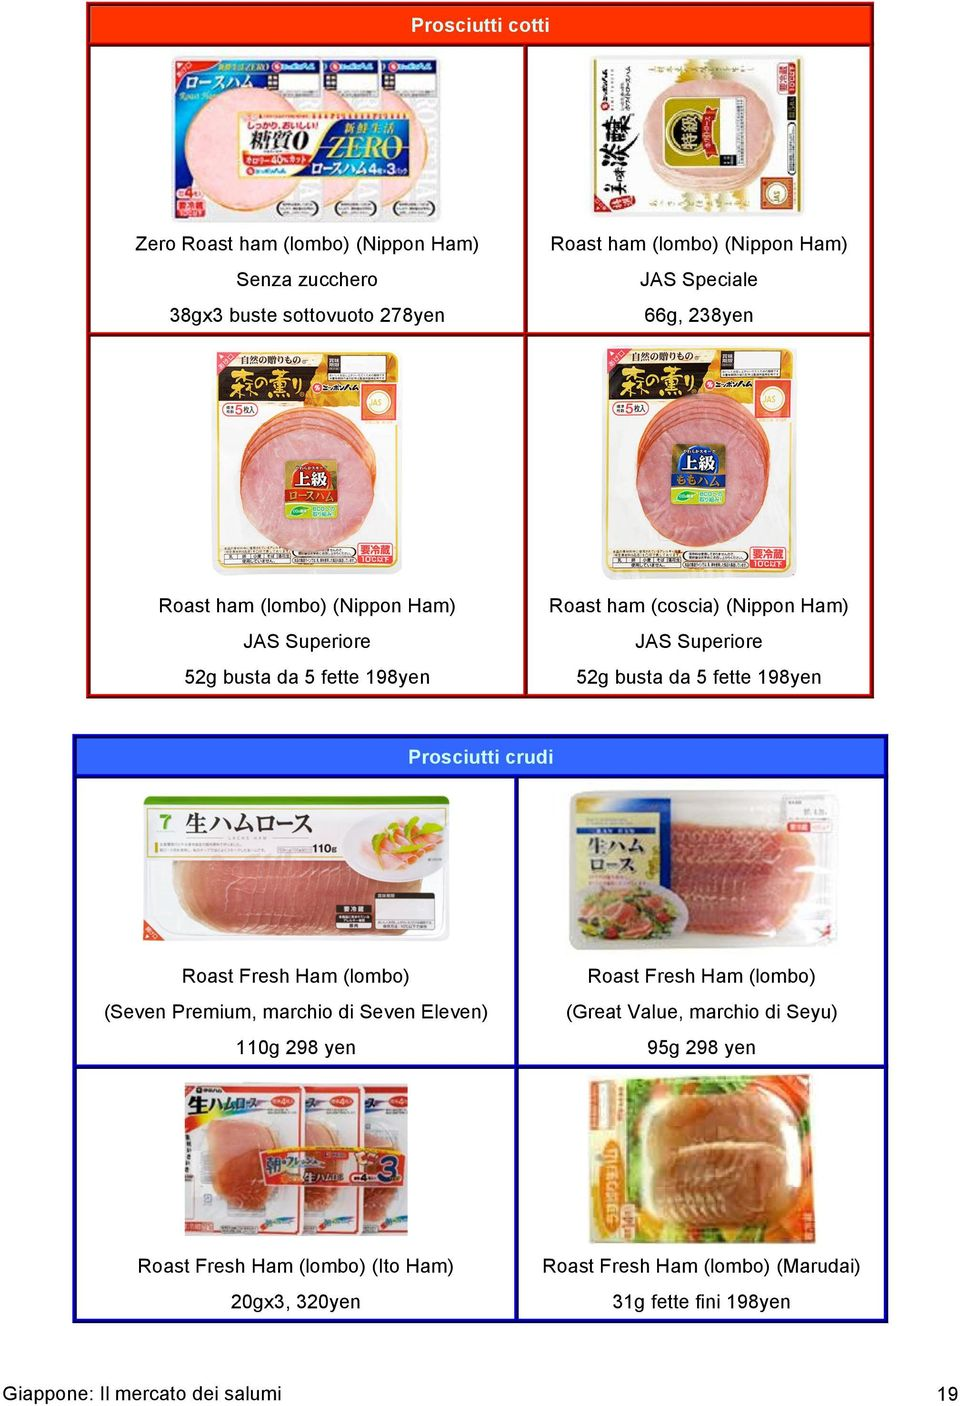 198yen Prosciutti crudi Roast Fresh Ham (lombo) Roast Fresh Ham (lombo) (Seven Premium, marchio di Seven Eleven) (Great Value, marchio di Seyu) 110g